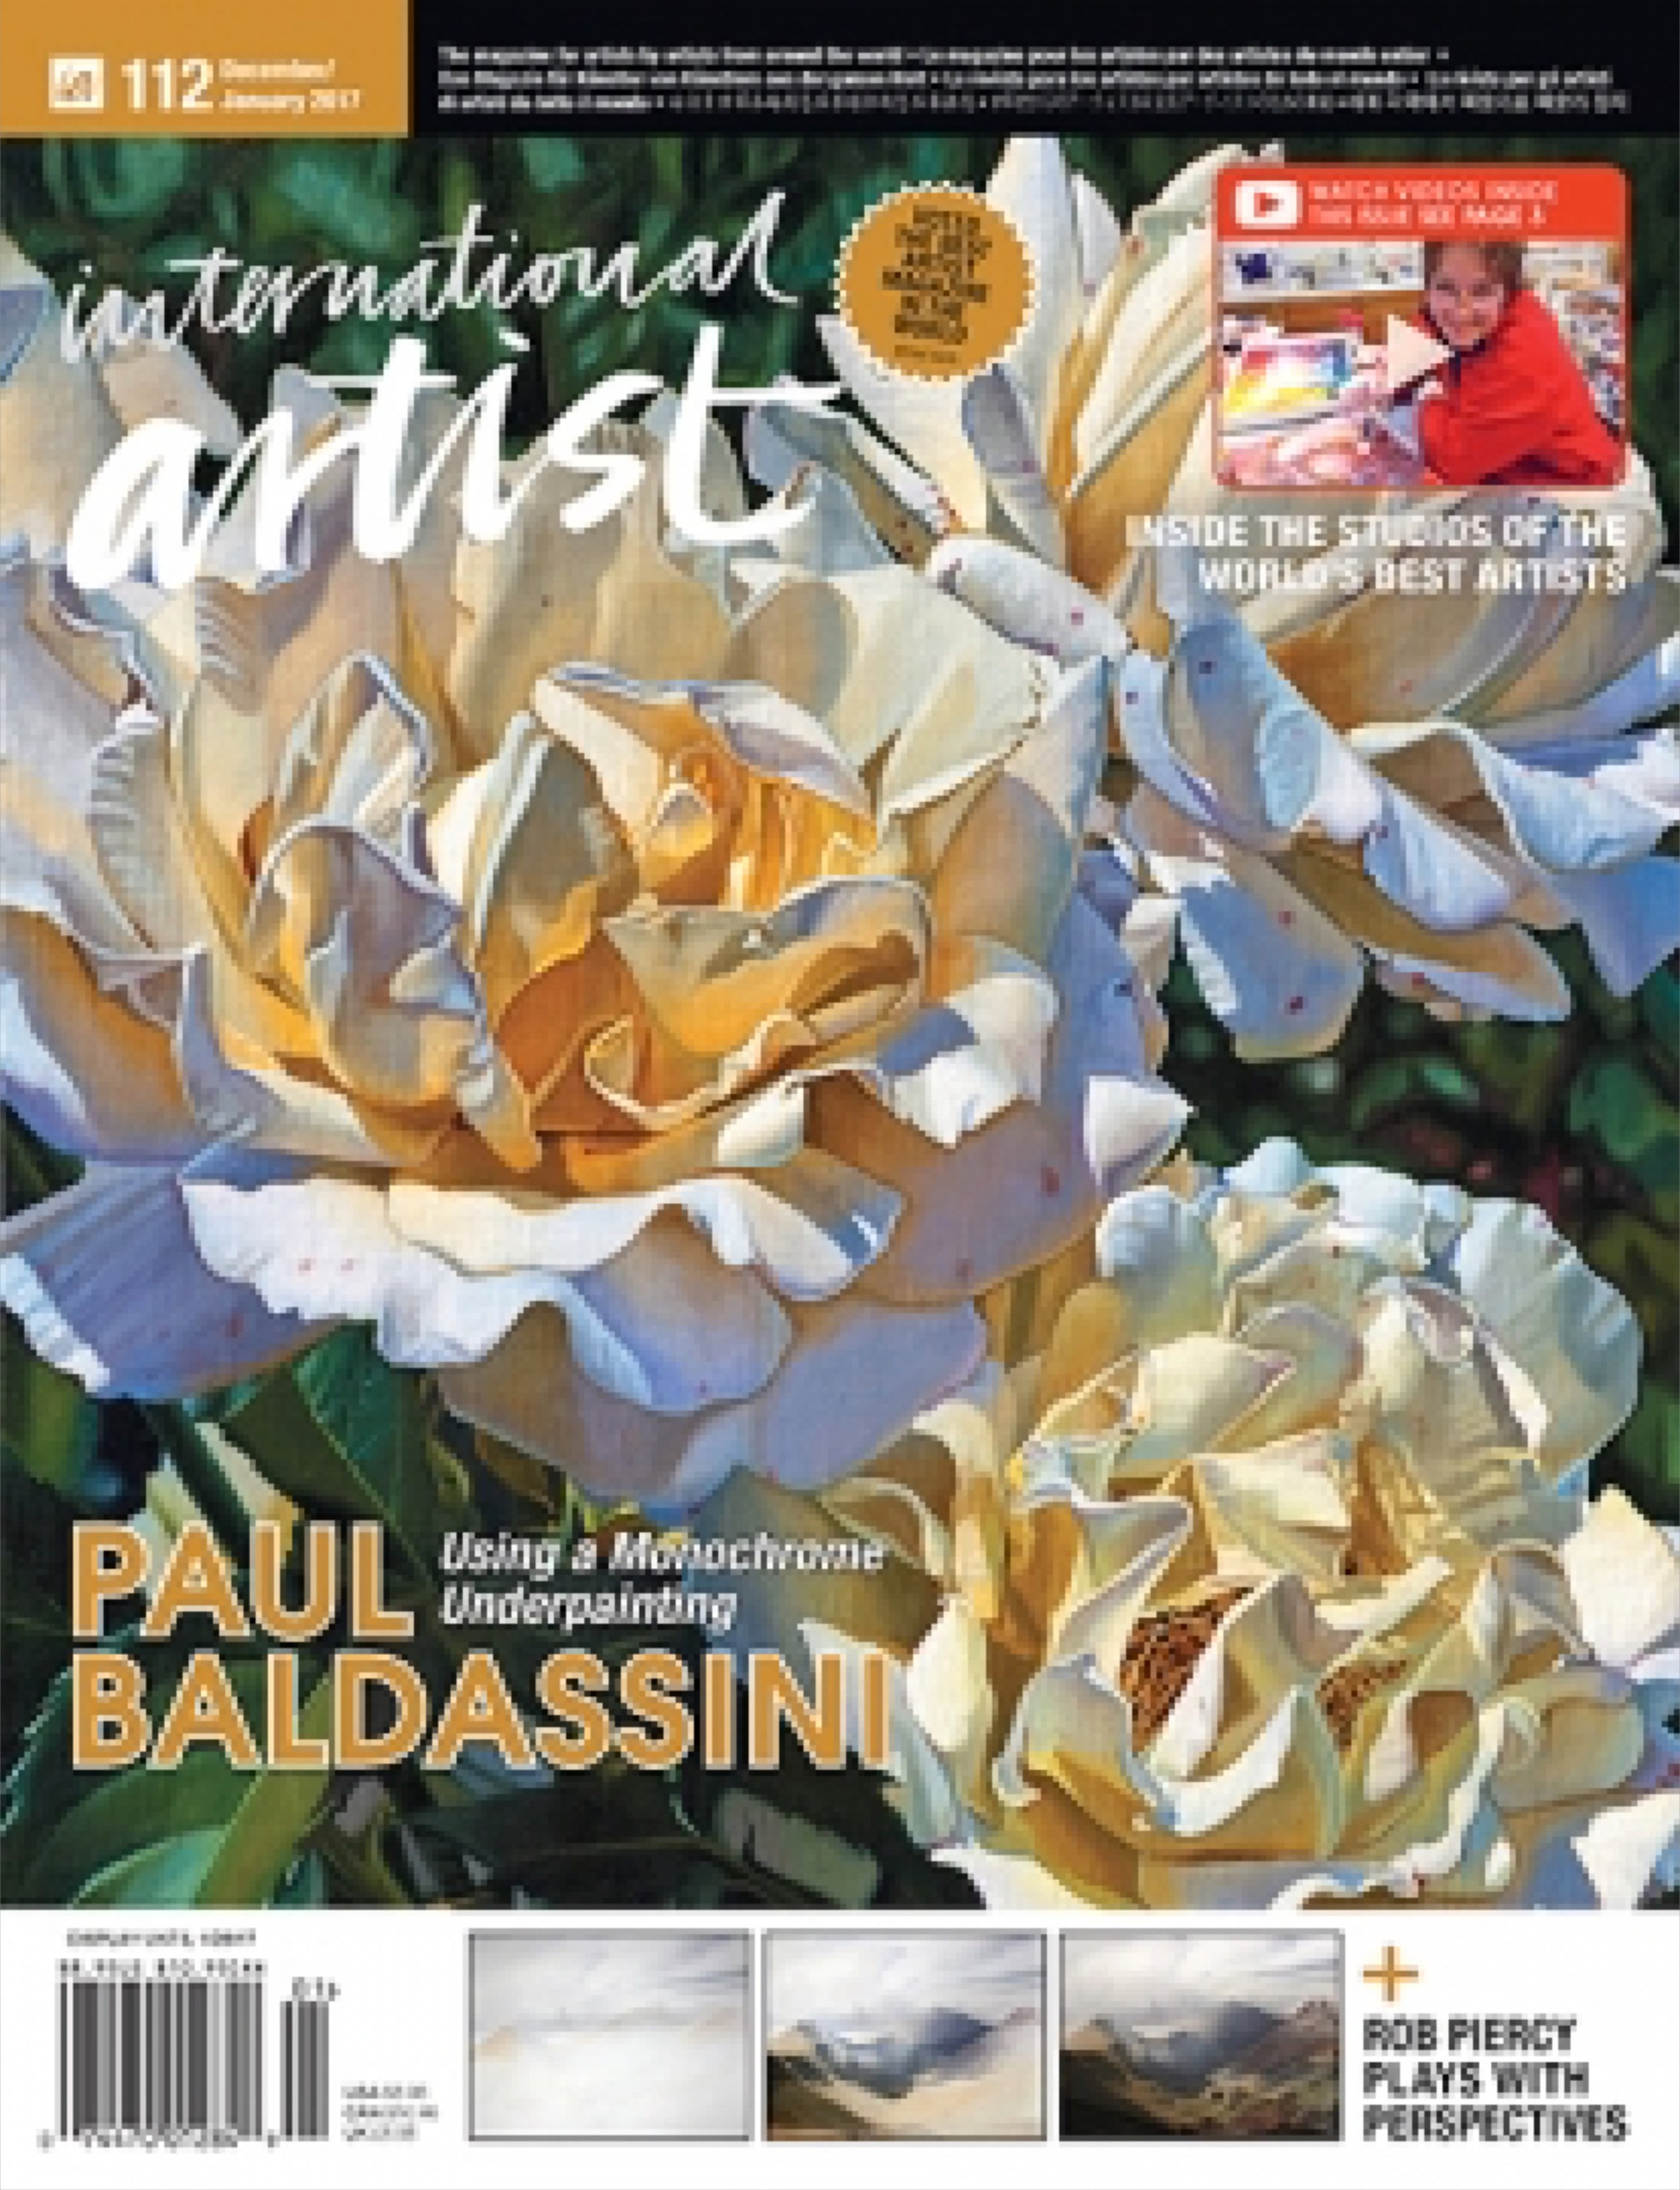 International Artist magazine, issue 112